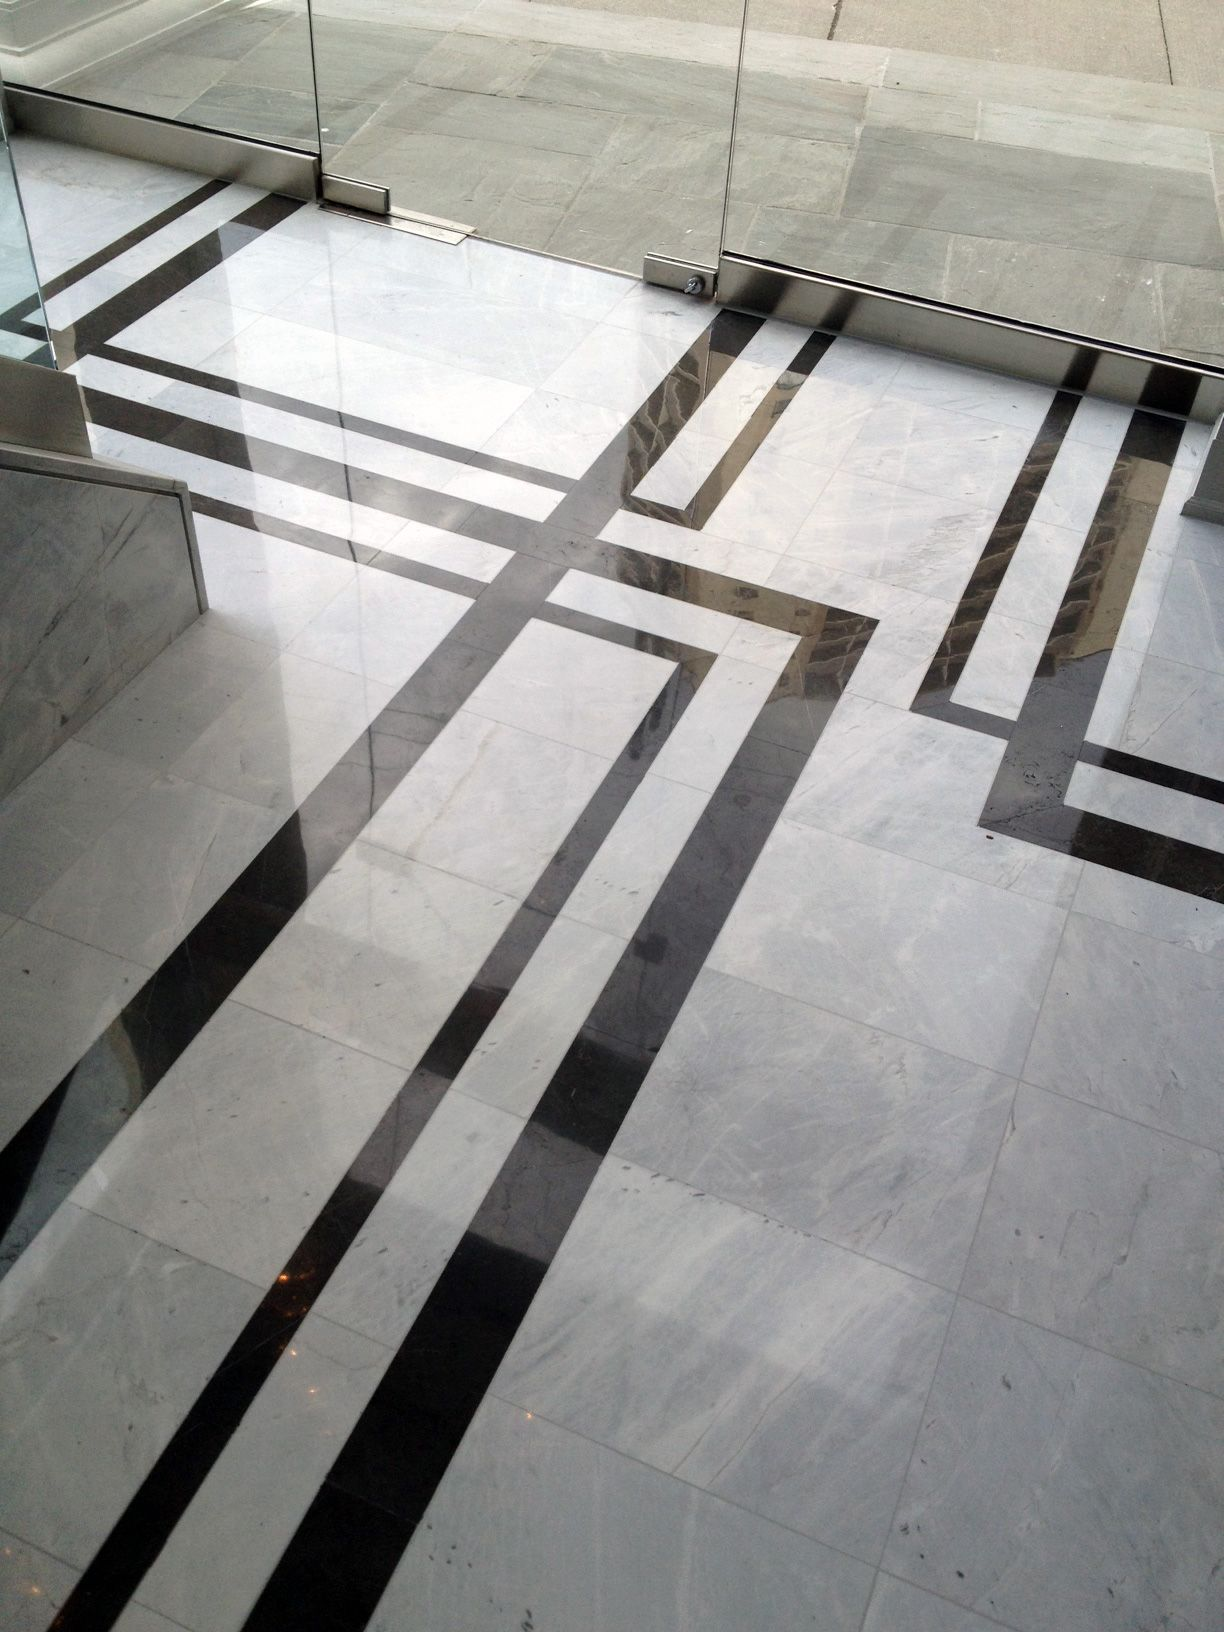 Floor Marbles Designs Strikingly Contrasting Marble Creates A Floor Pattern That